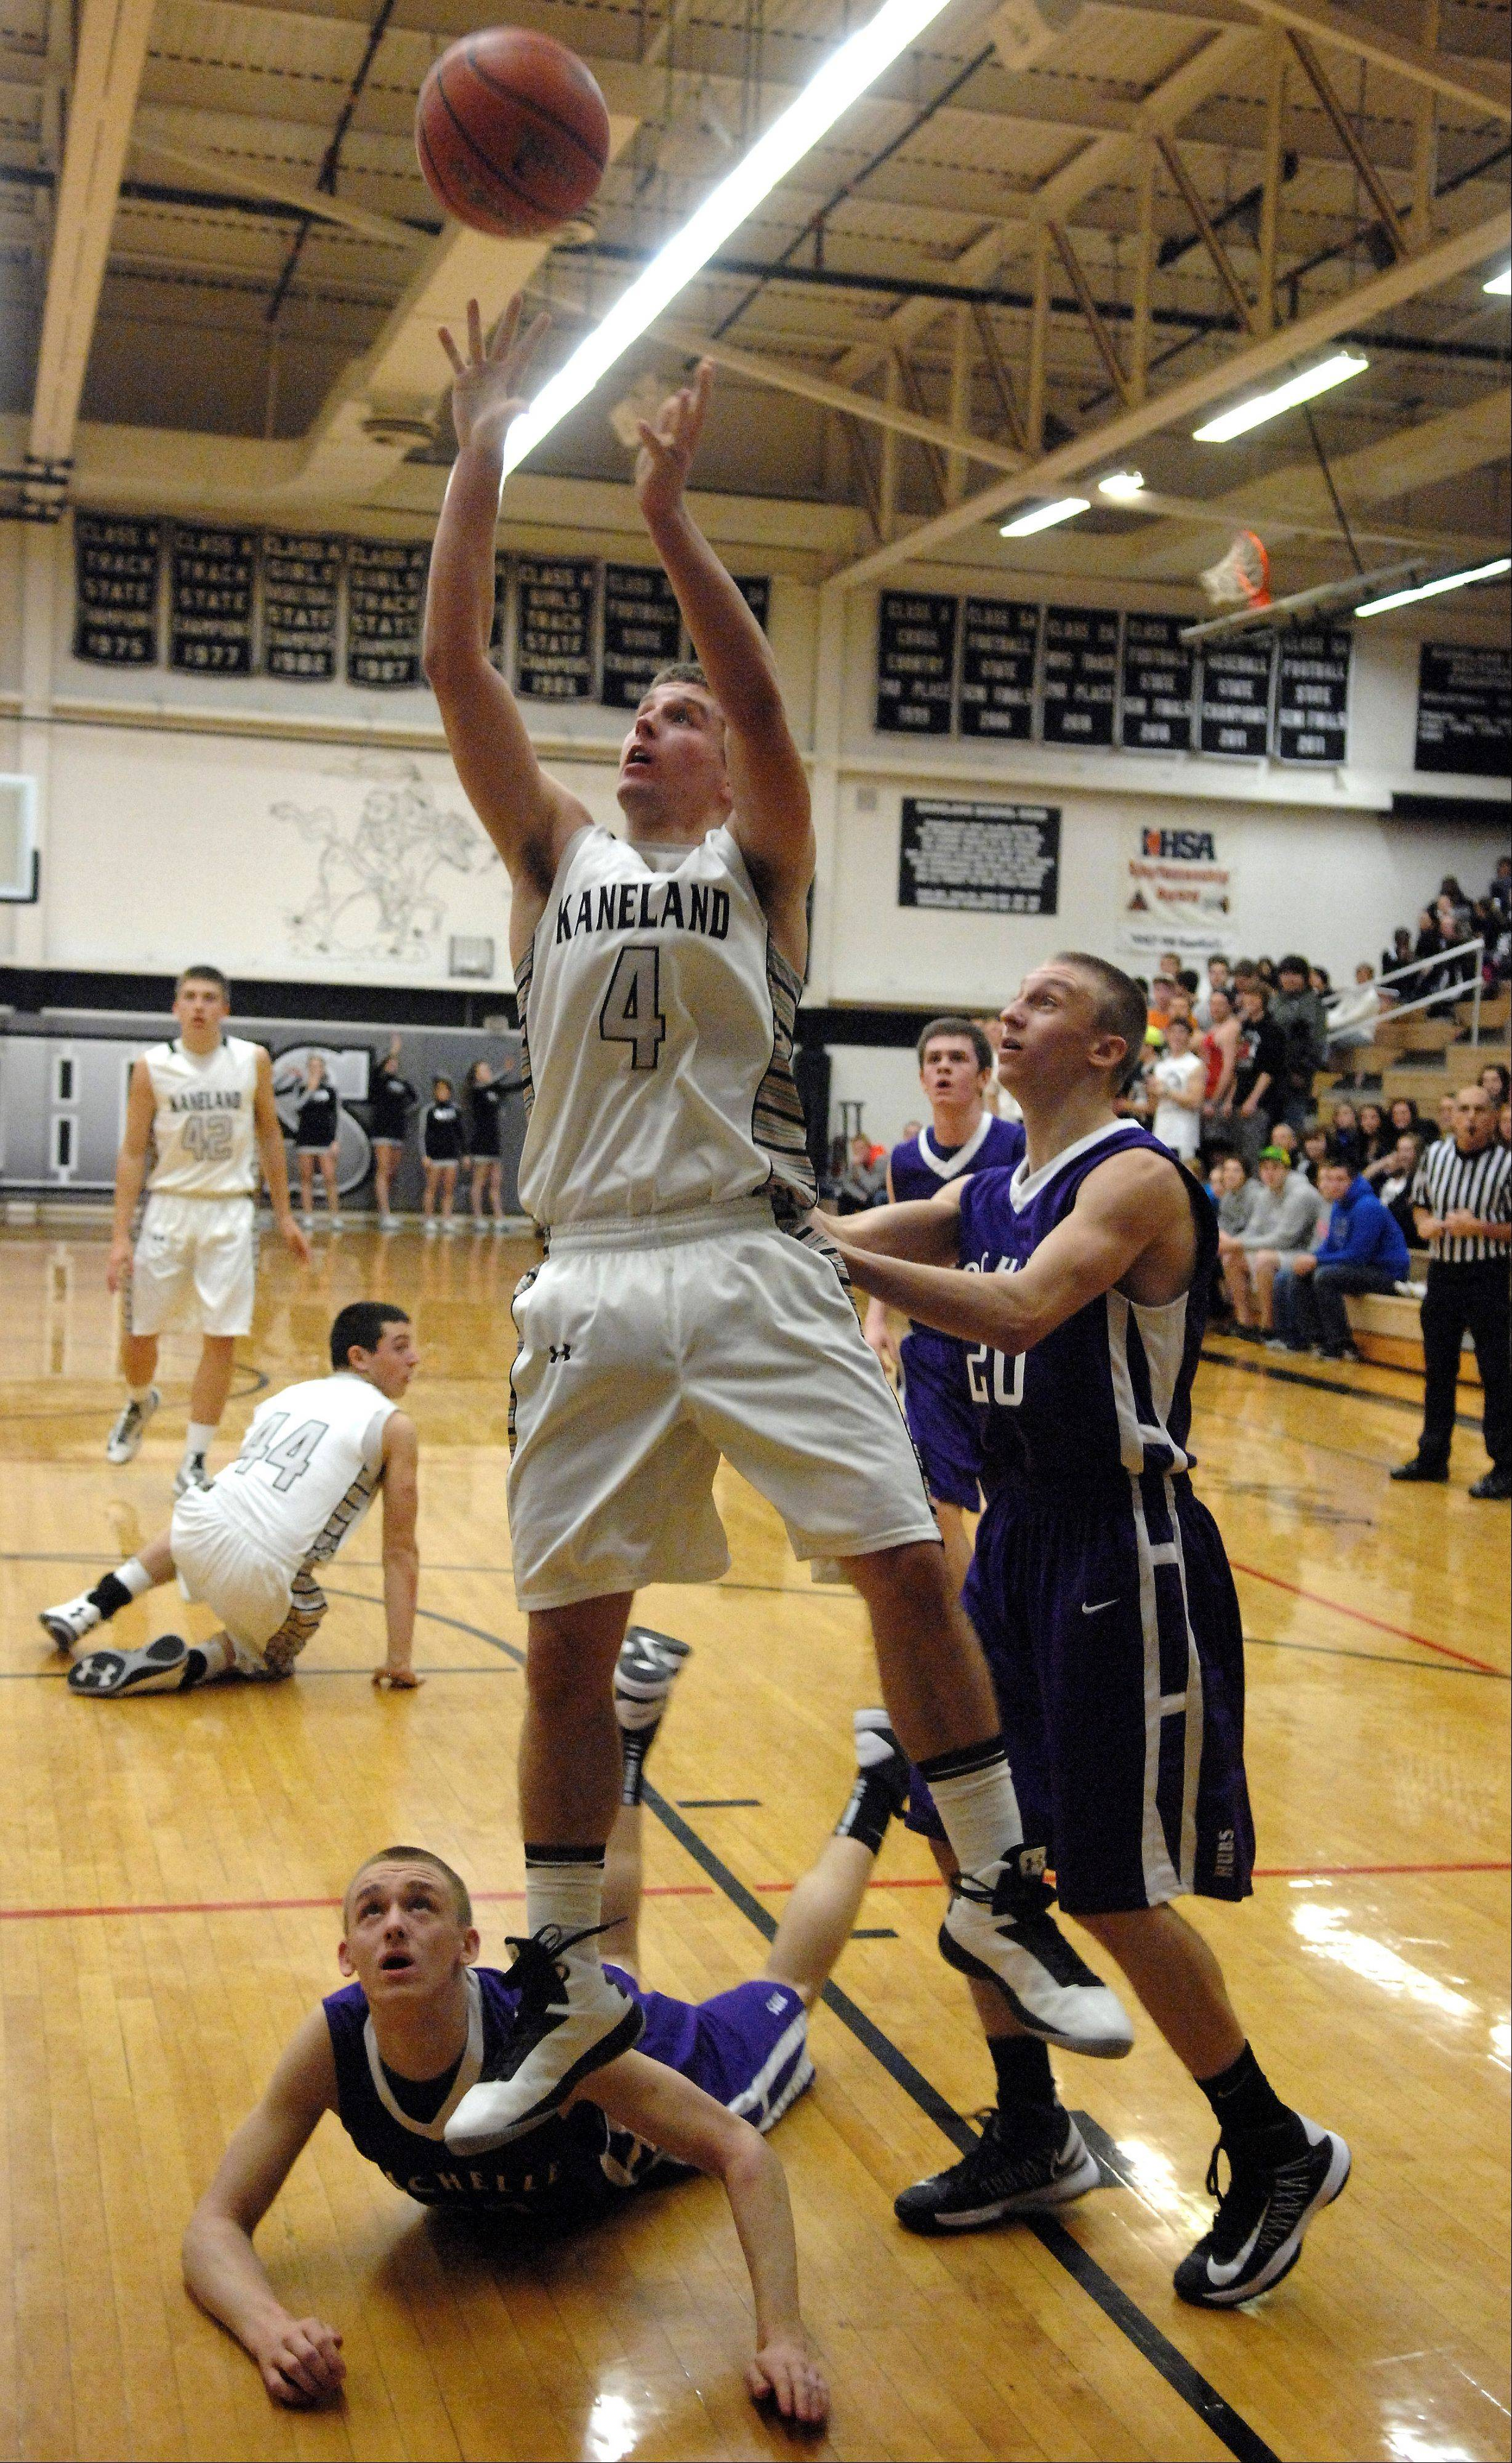 Kaneland's Drew David puts up a shot after a scramble on the floor for the ball.